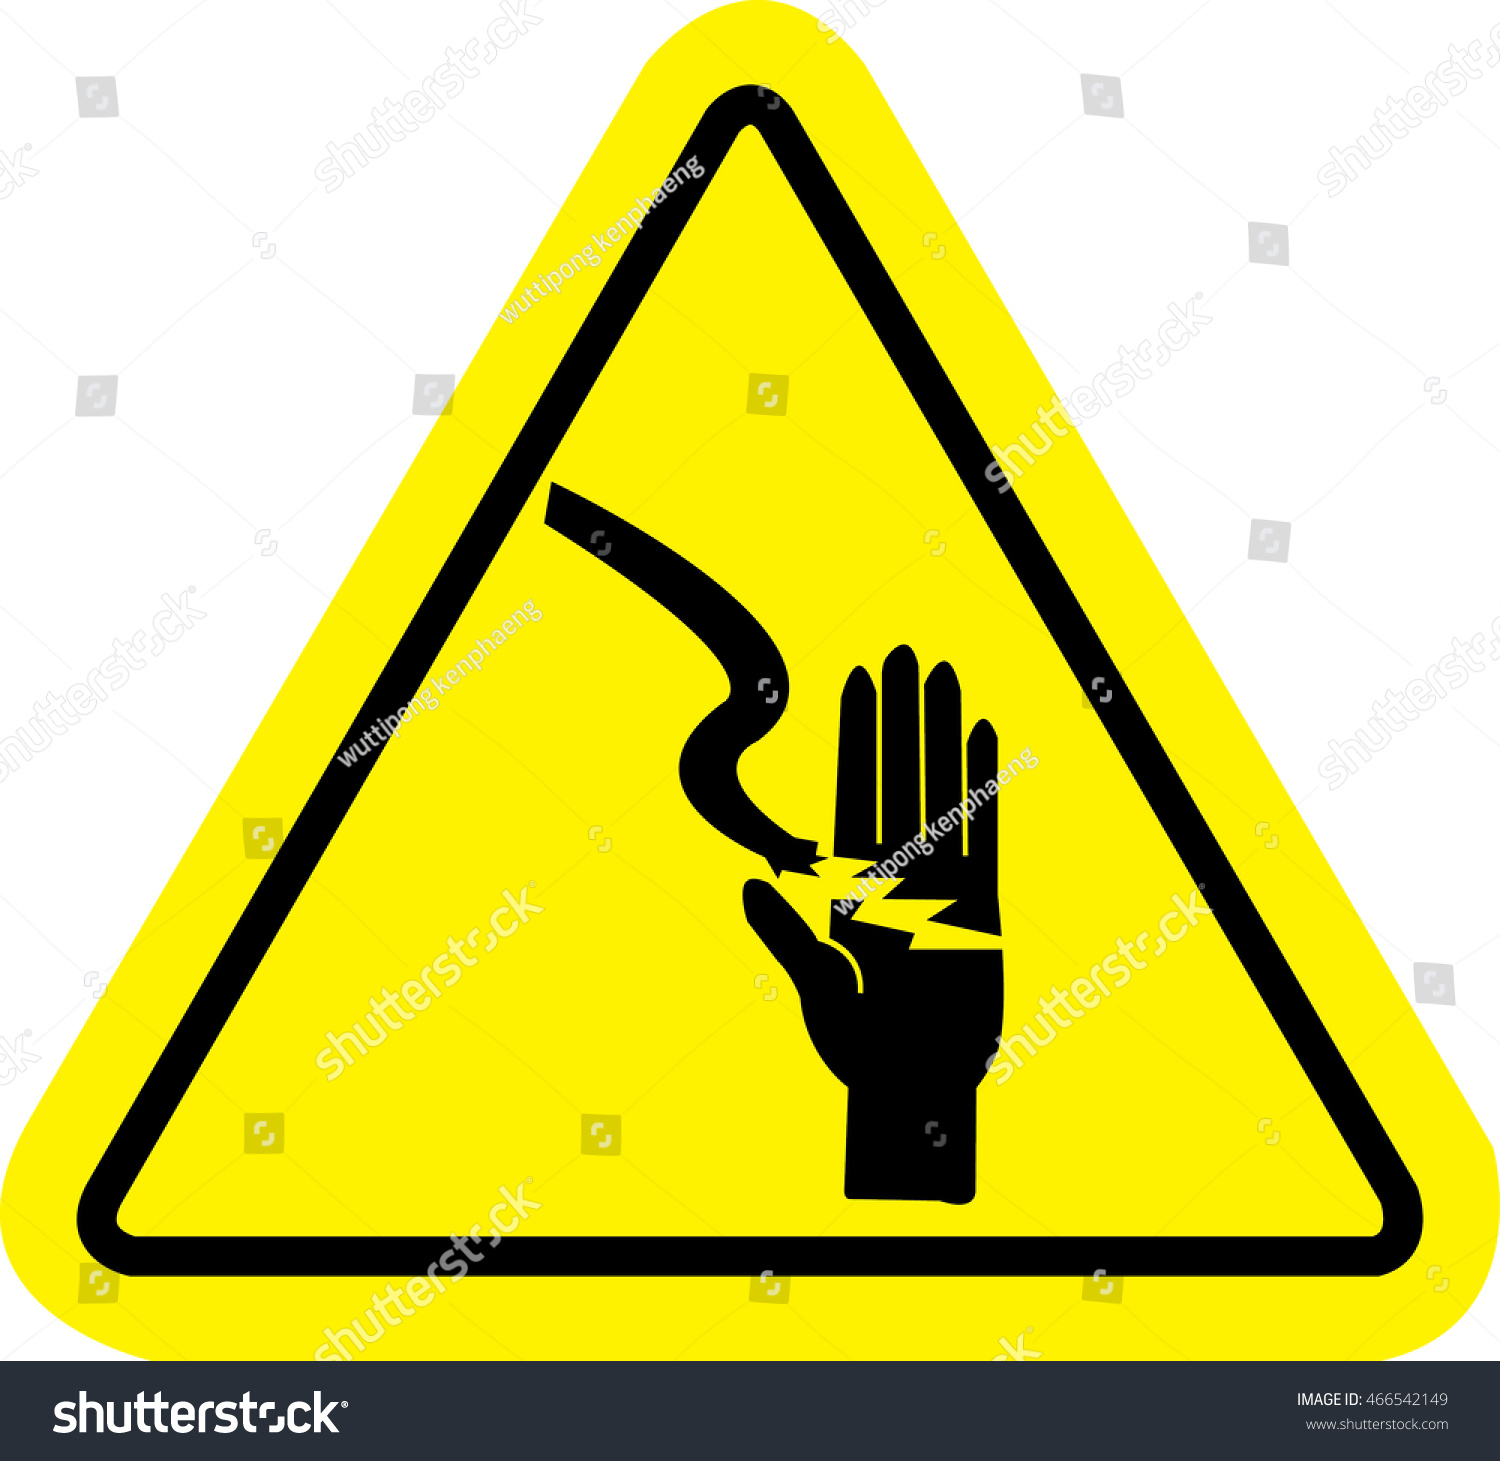 High voltage sign danger symbol isolated stock vector 466542149 high voltage sign danger symbol isolated in yellow triangle buycottarizona